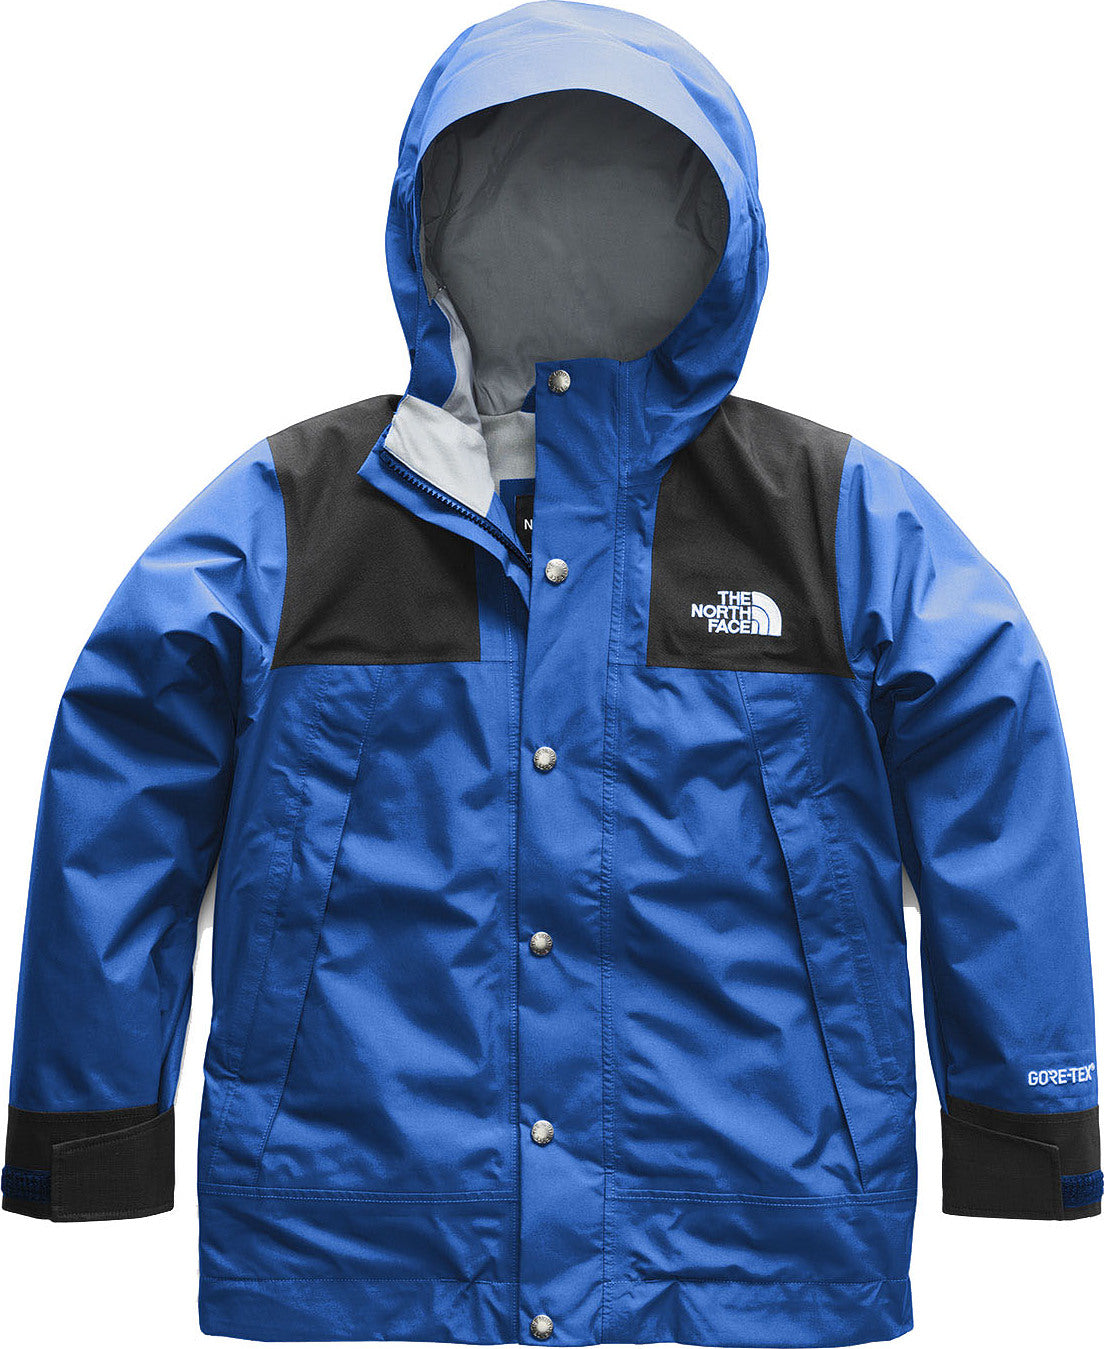 bc11c1f3c The North Face Mountain GTX Jacket - Youth